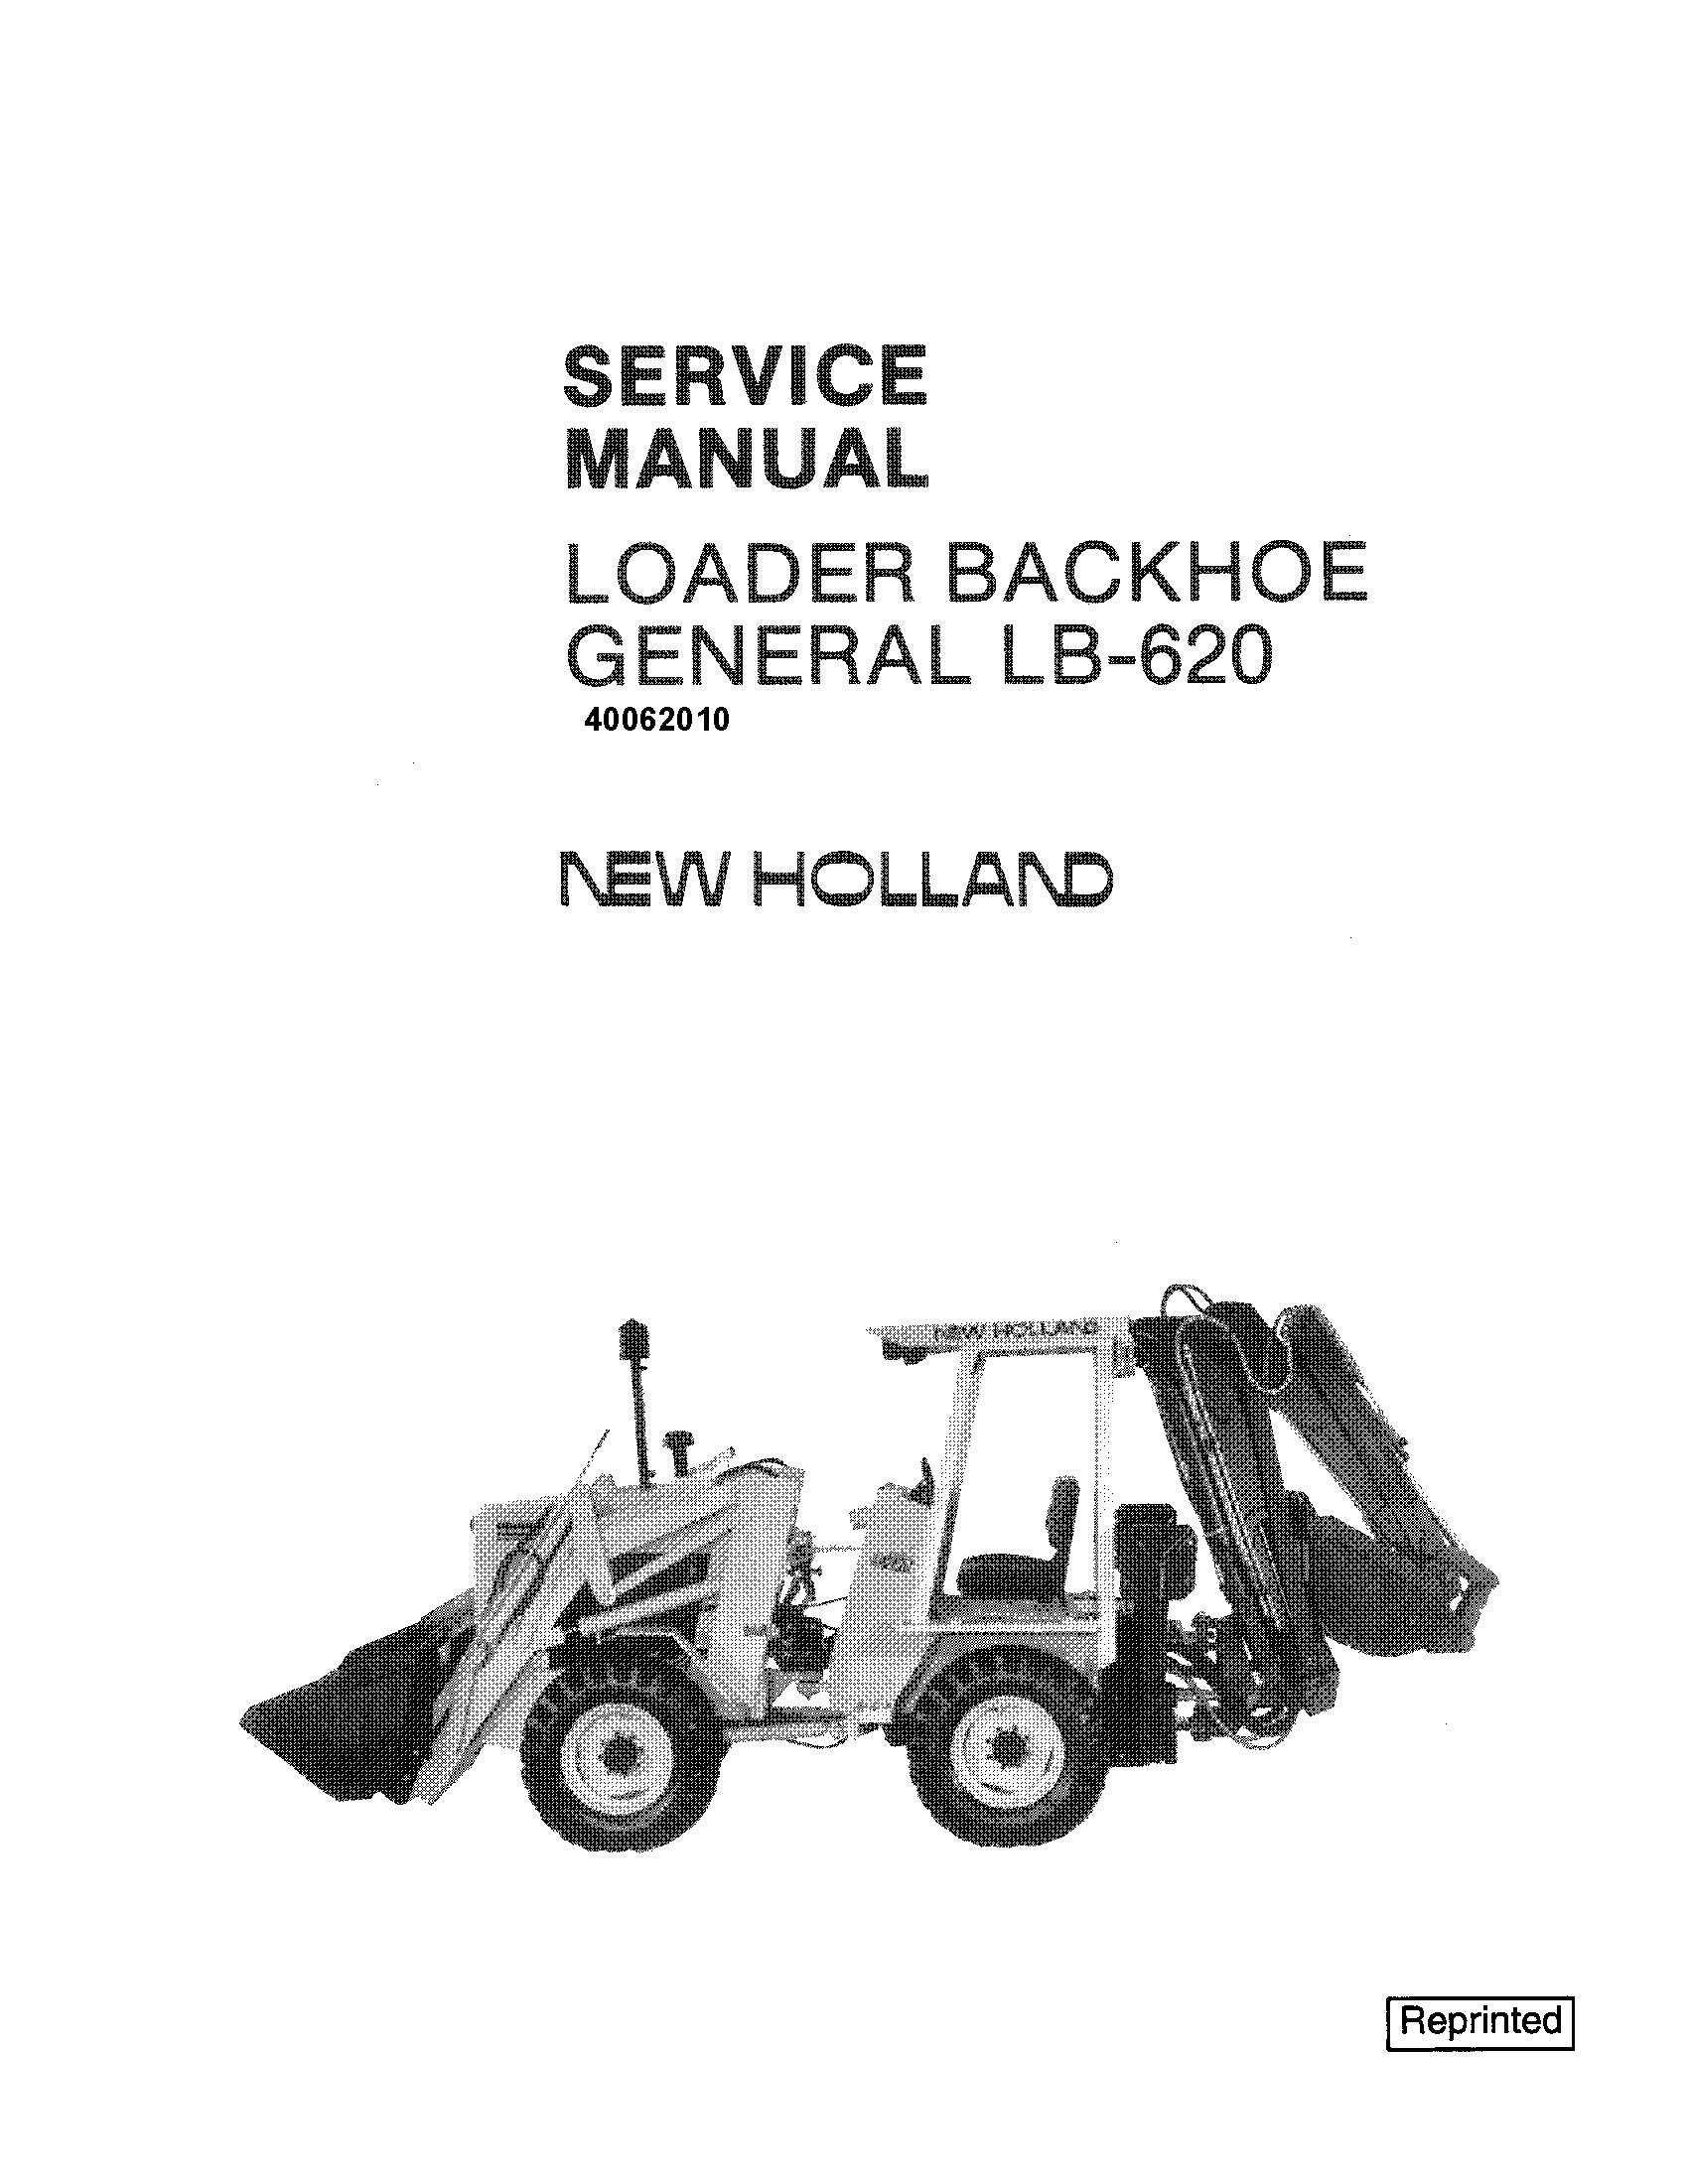 New Holland LB620 Backhoe Loader Service Manual